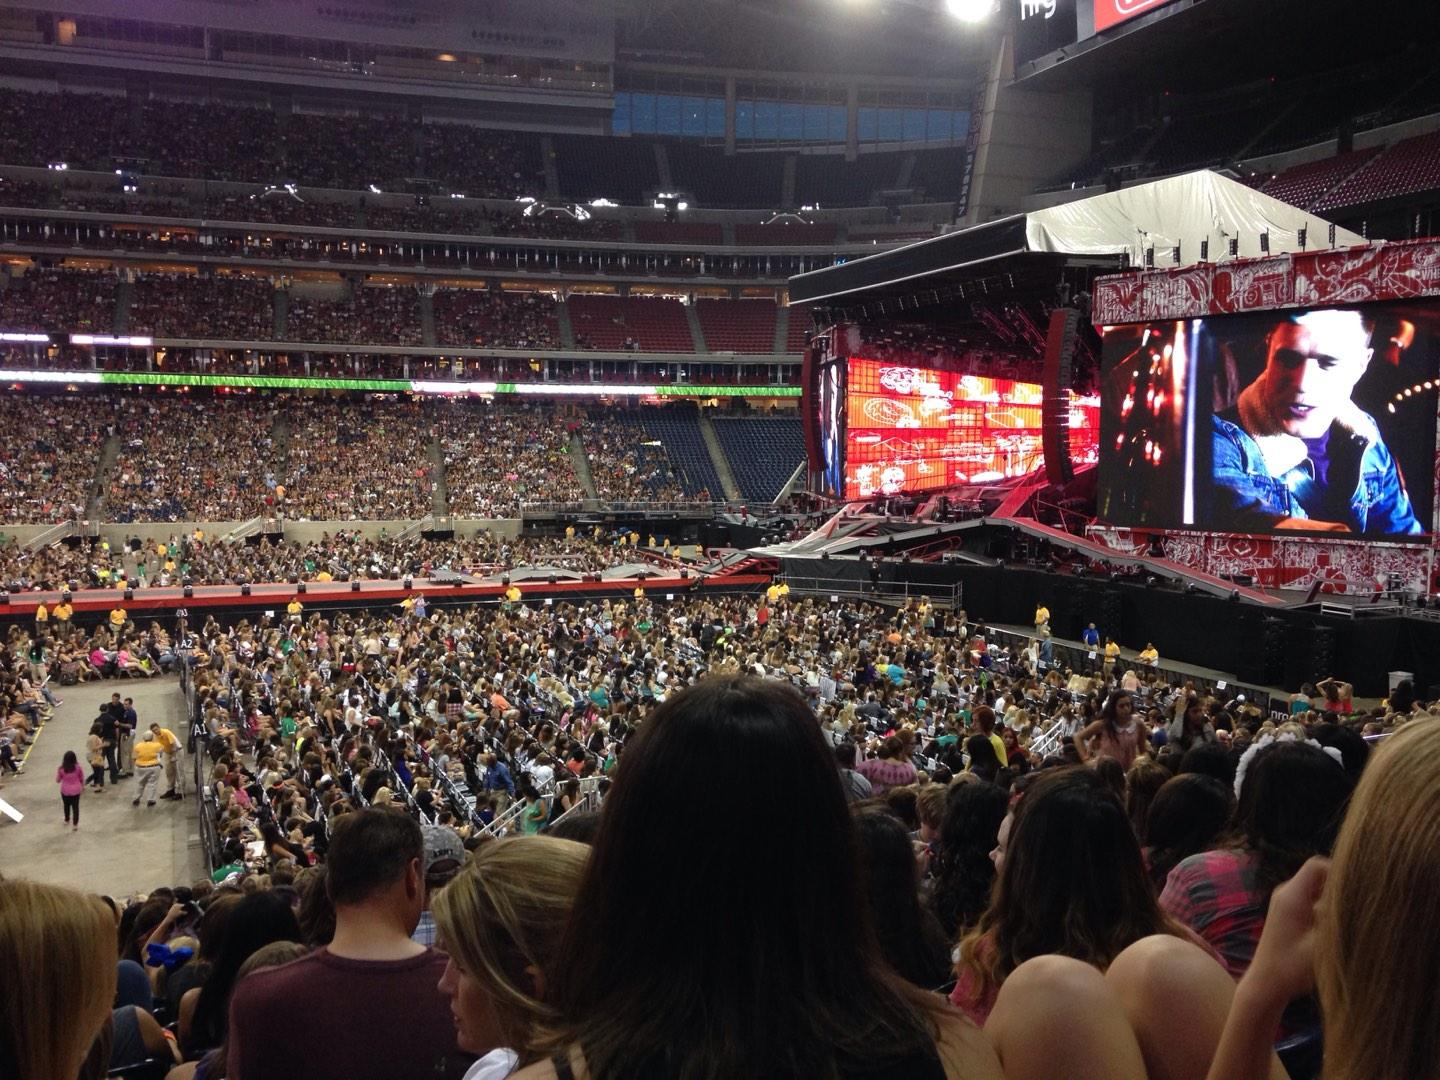 Nrg Stadium Section 125 Concert Seating Rateyourseats Com